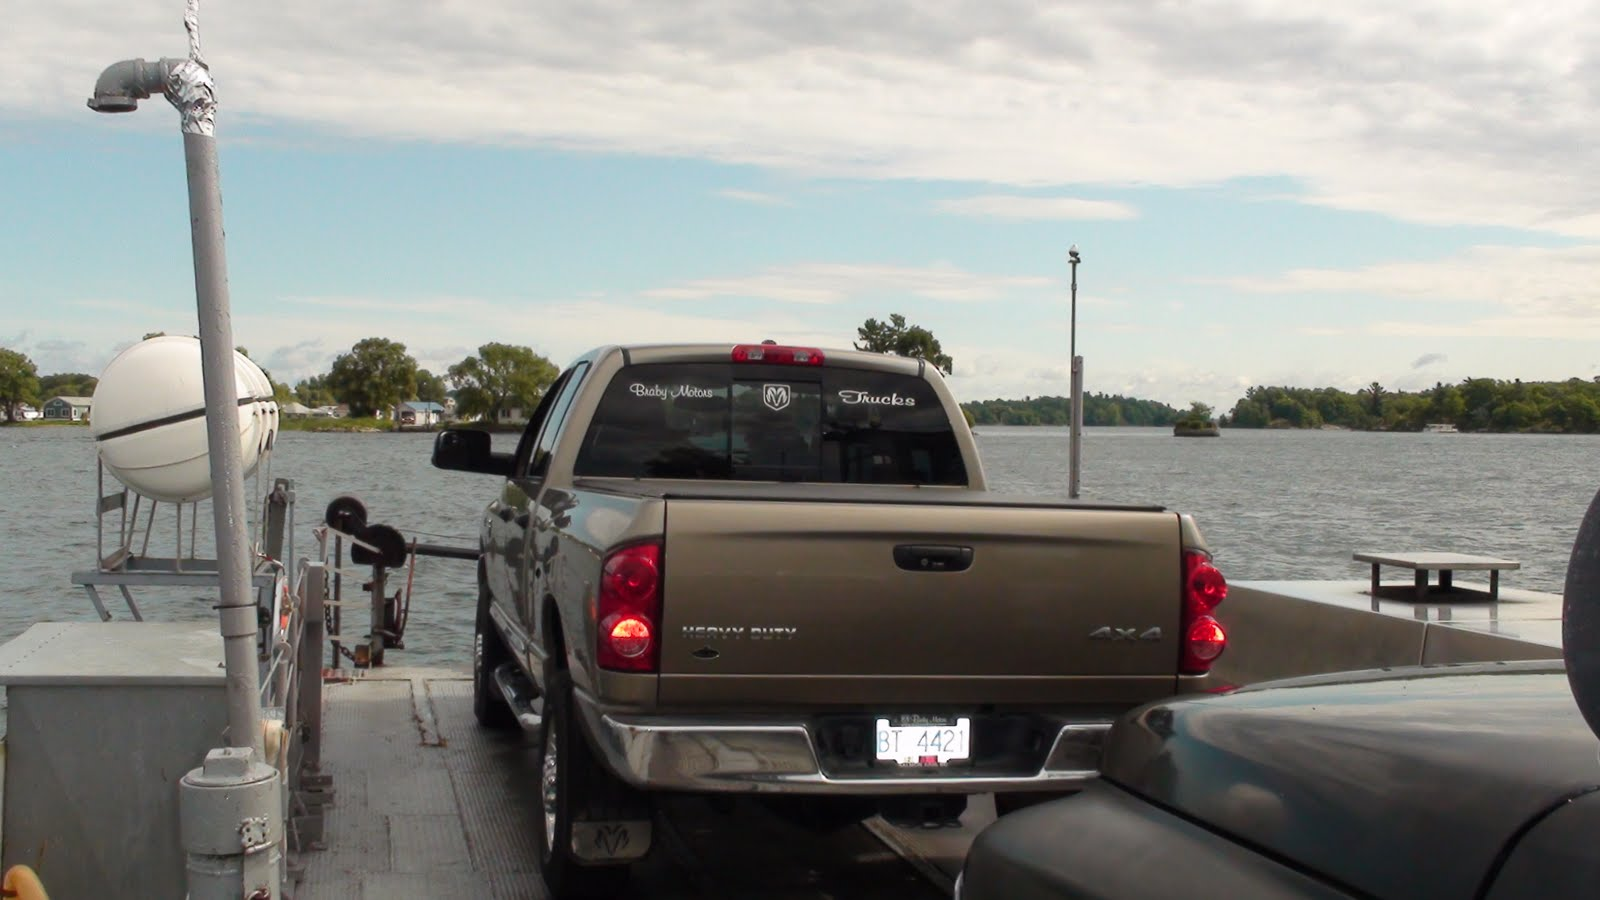 Our truck on the ferry.